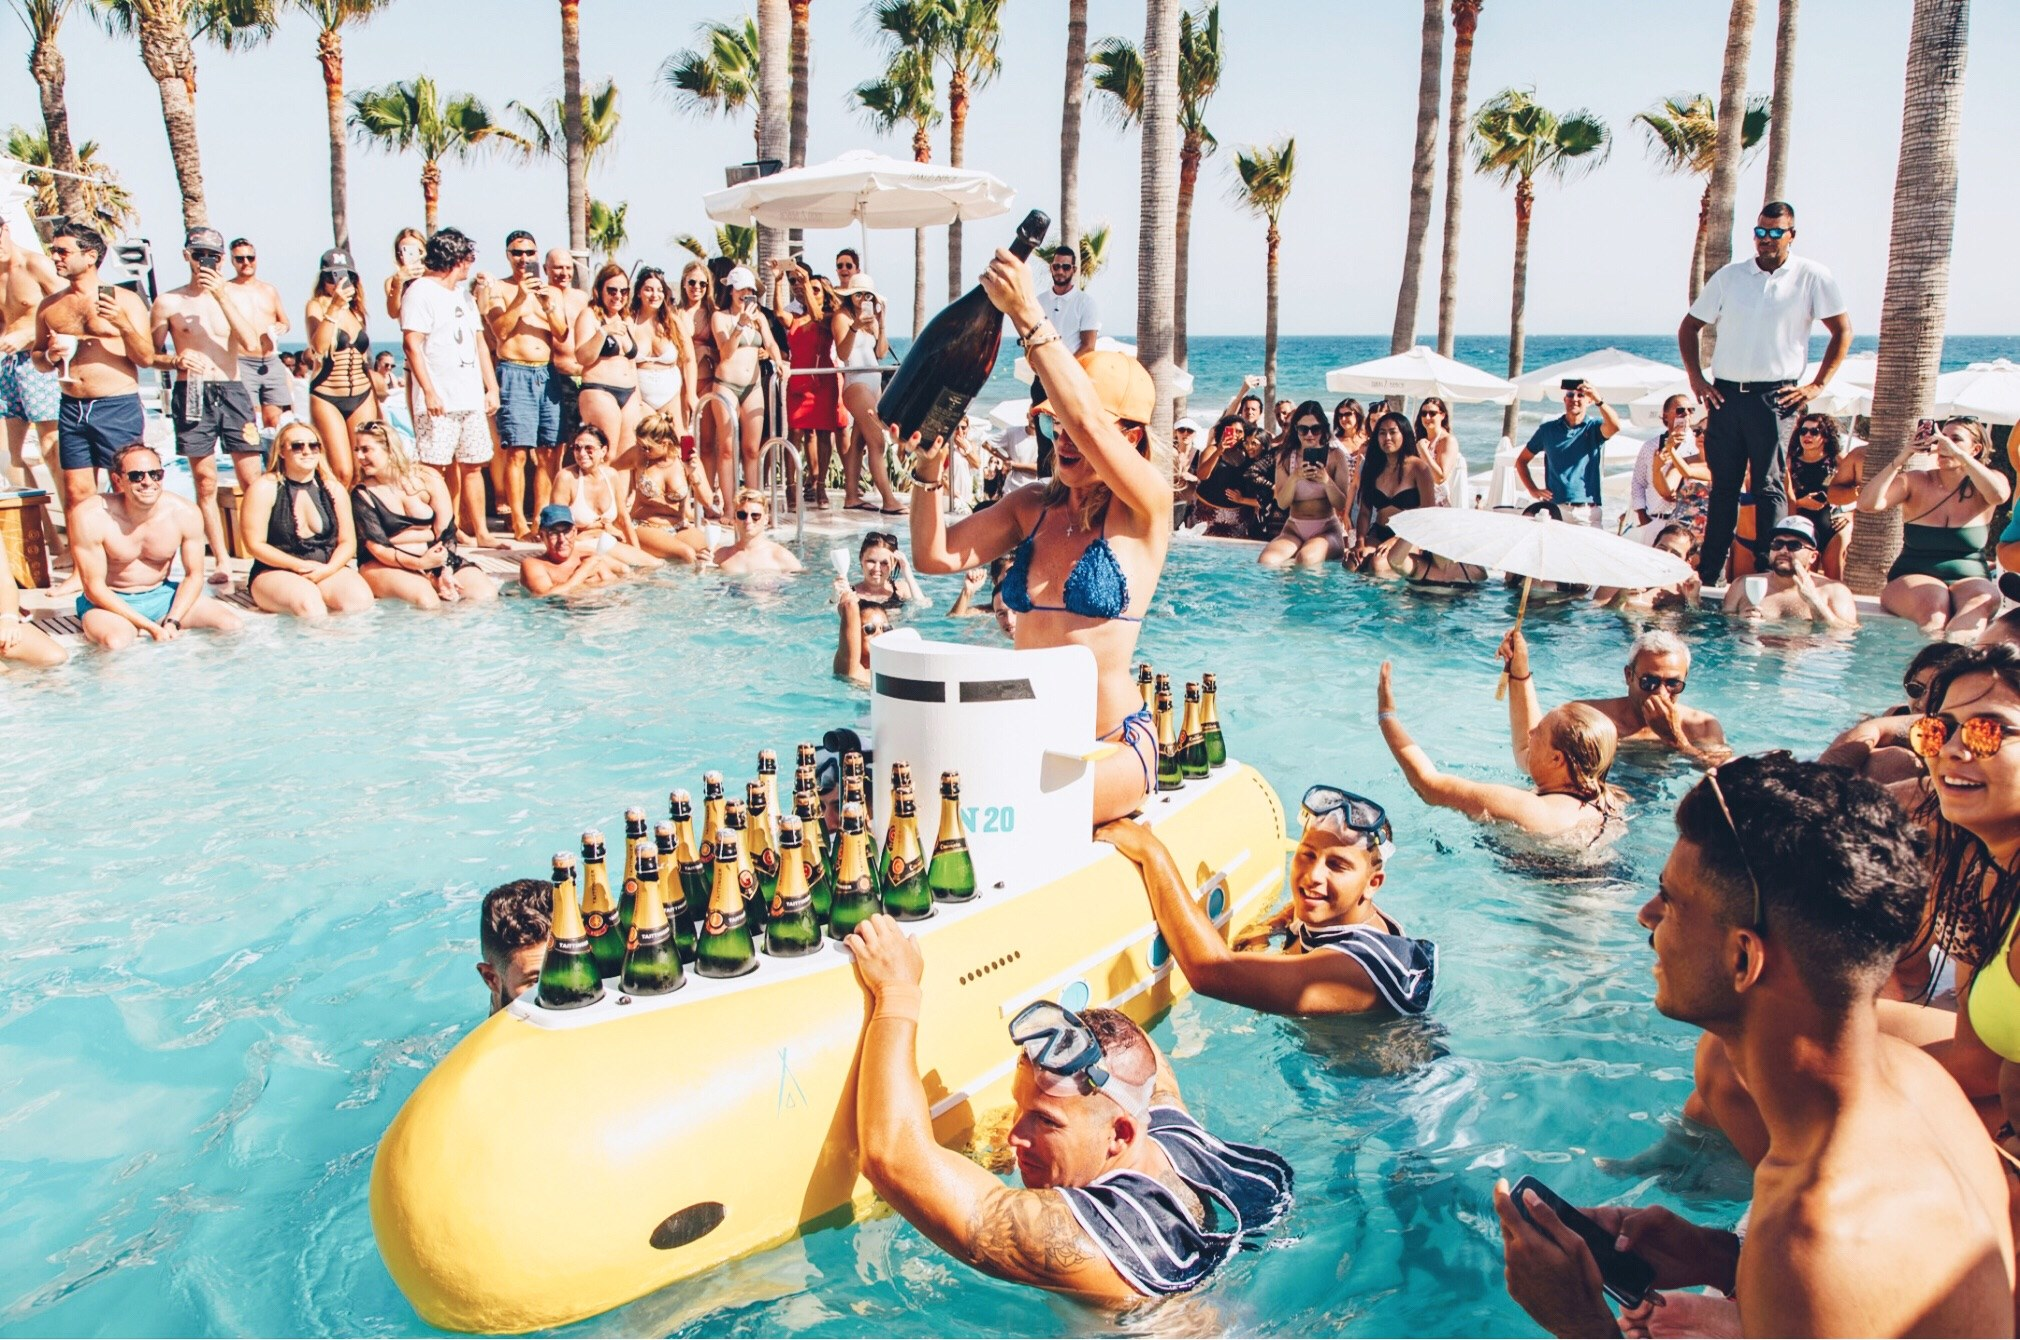 Dutch Kings Day Nikki Beach 2020